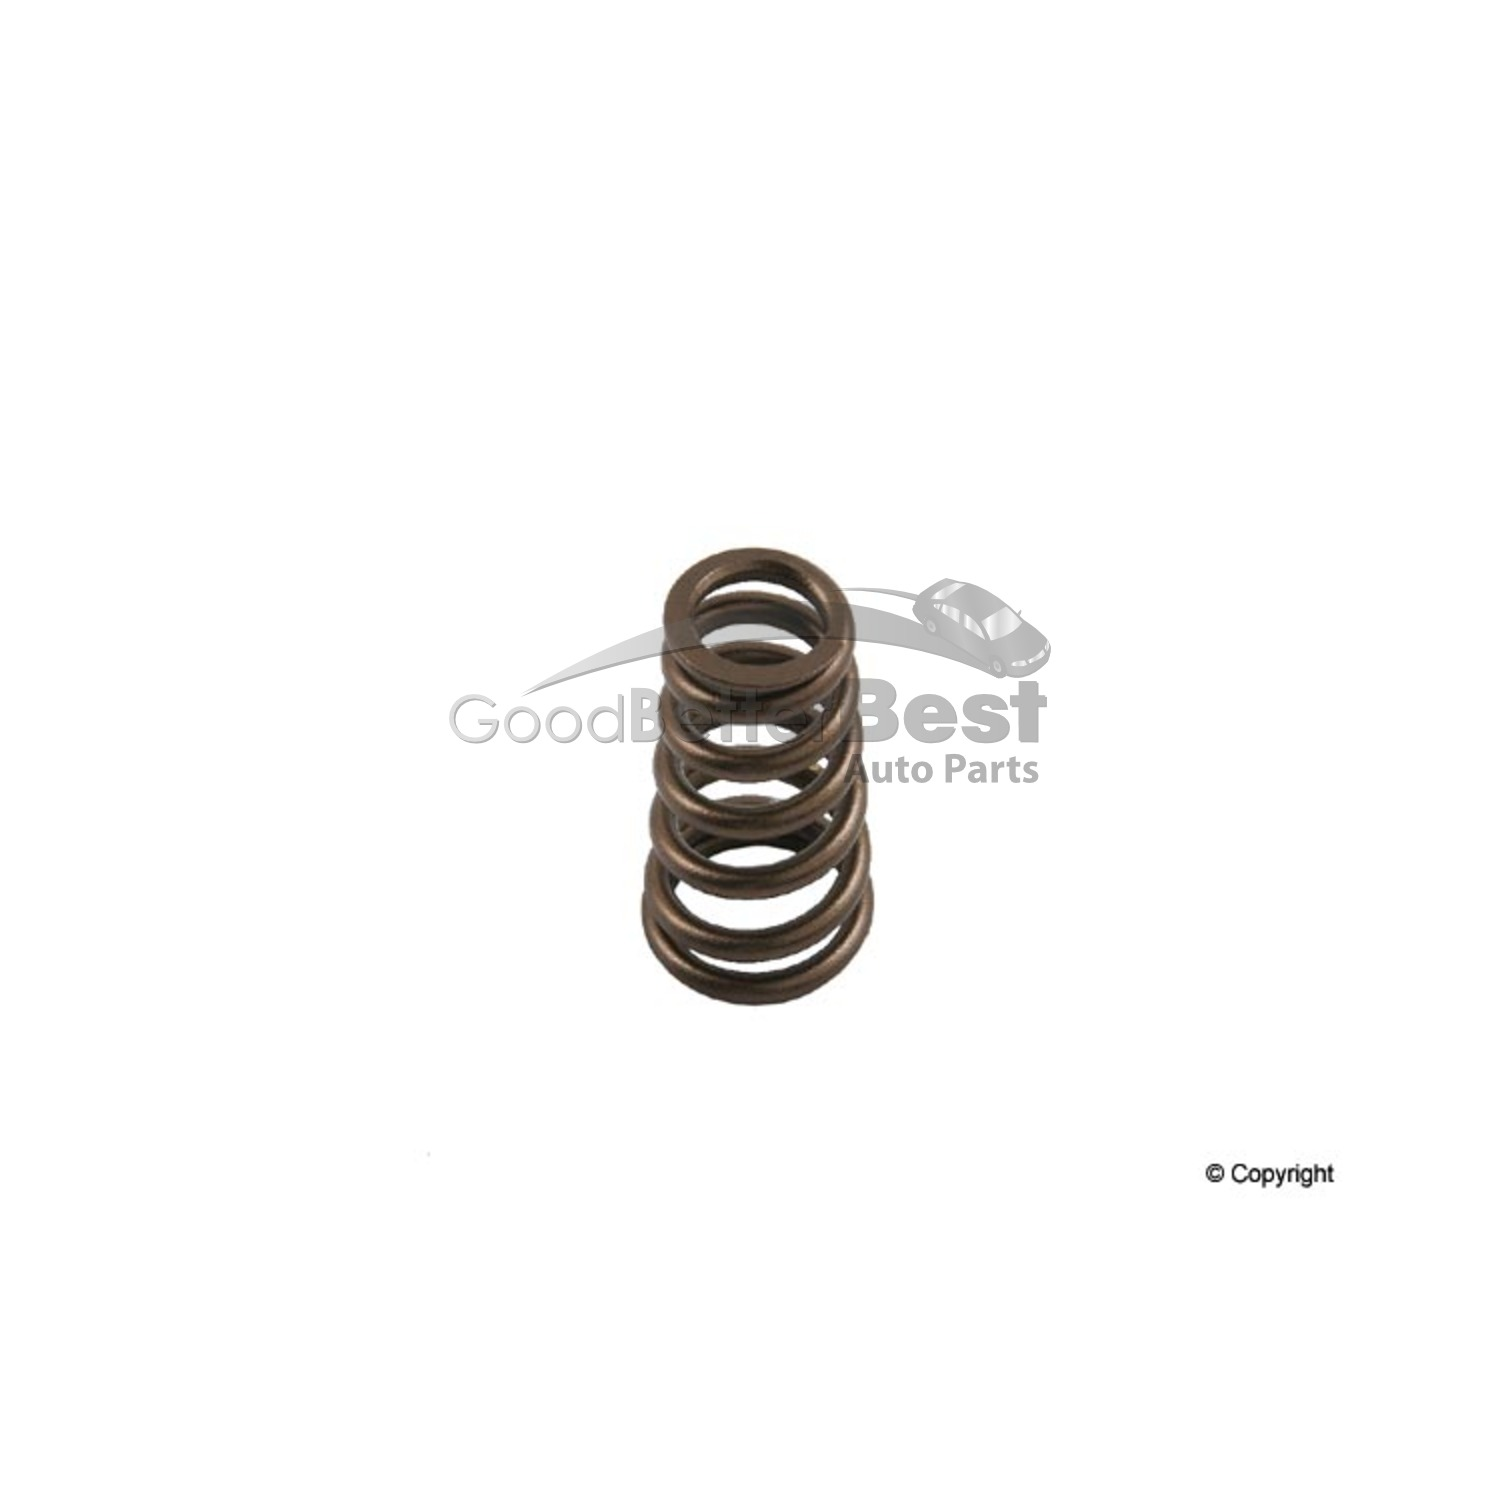 New Genuine Engine Valve Spring Exhaust For